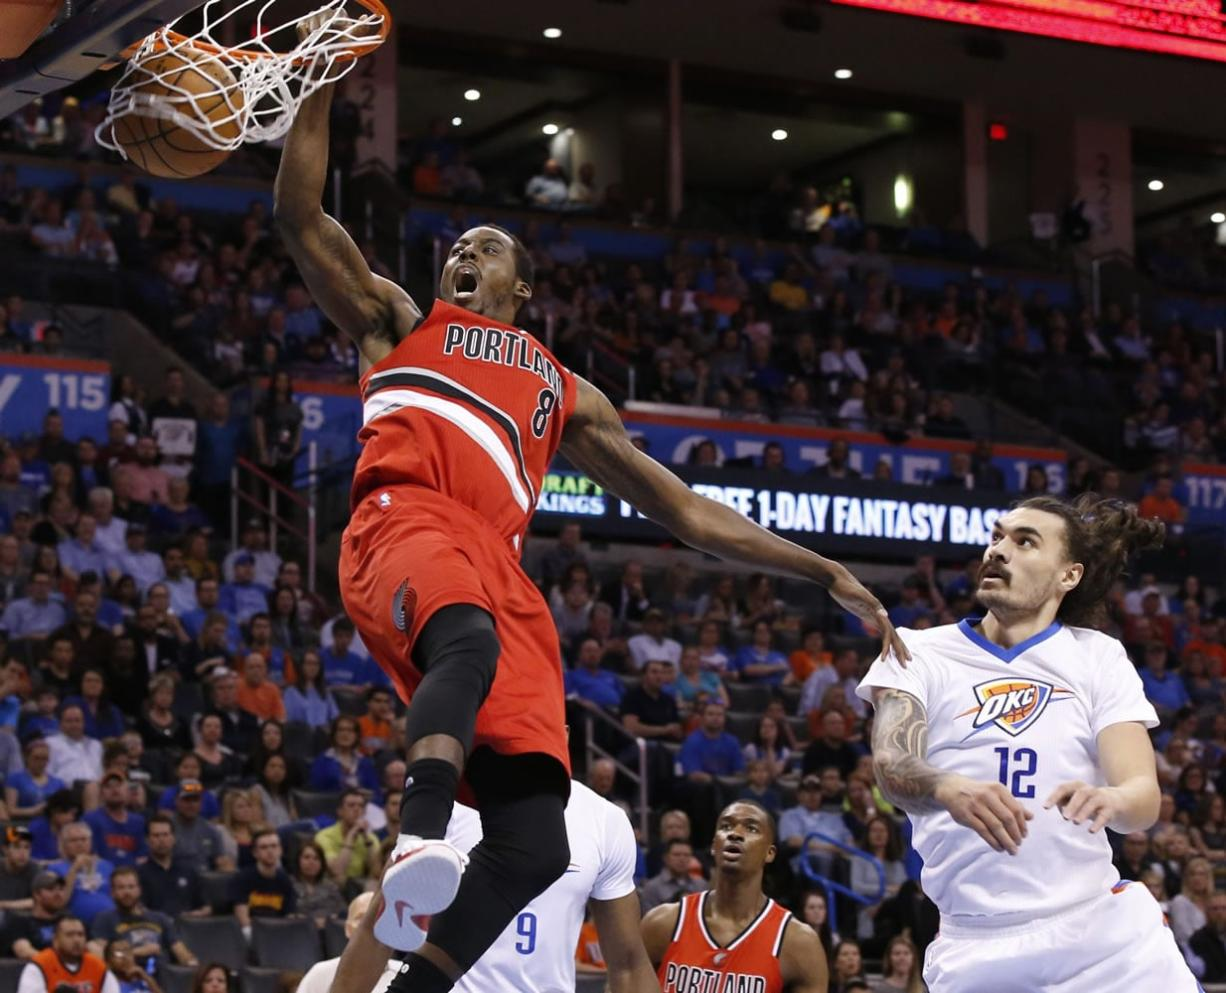 Portland's Al-Farouq Aminu, dunking in front of Oklahoma City's Steven Adams, is the Blazers best option at power forward according to one statistics website that tracks NBA players.